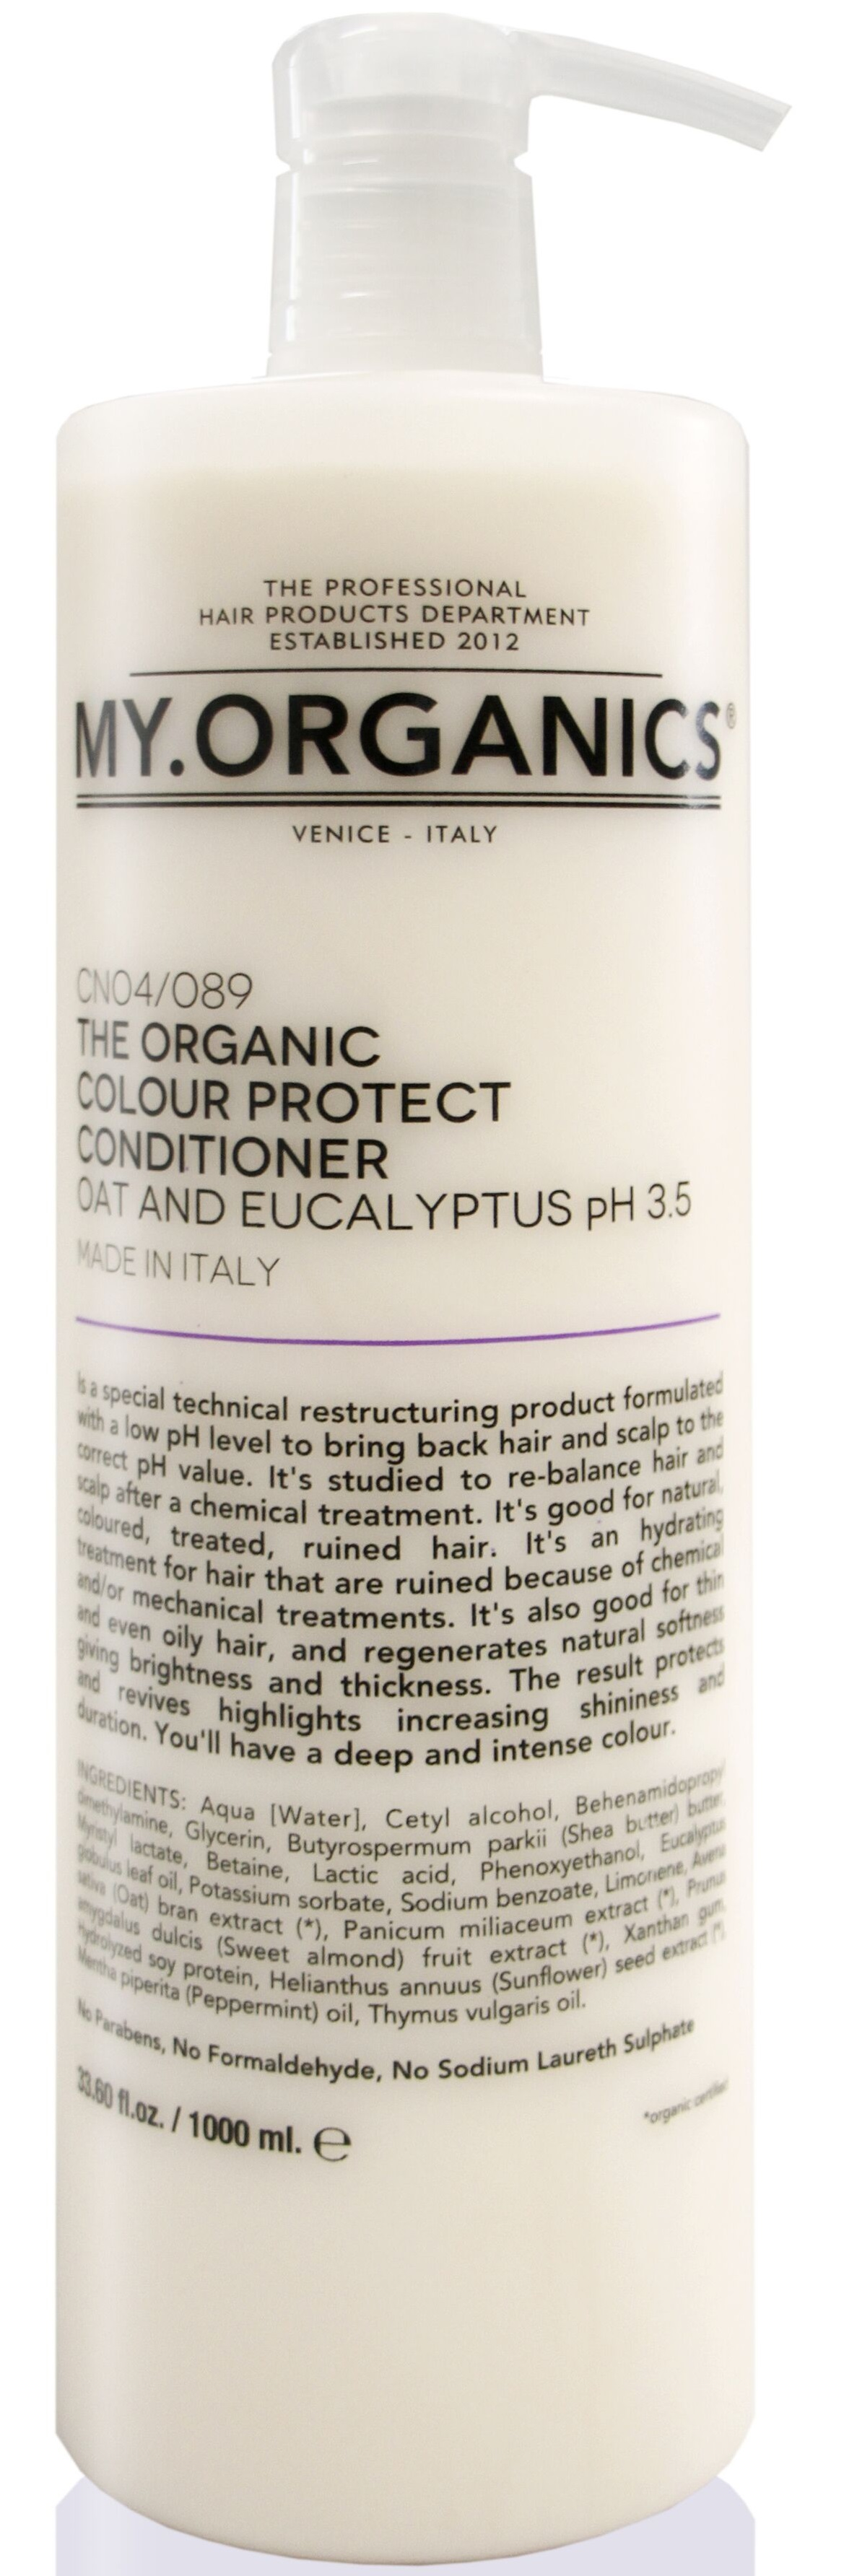 MY.ORGANICS The Organic Colour Protect Conditioner Oat And Eucalyptus 1000ml